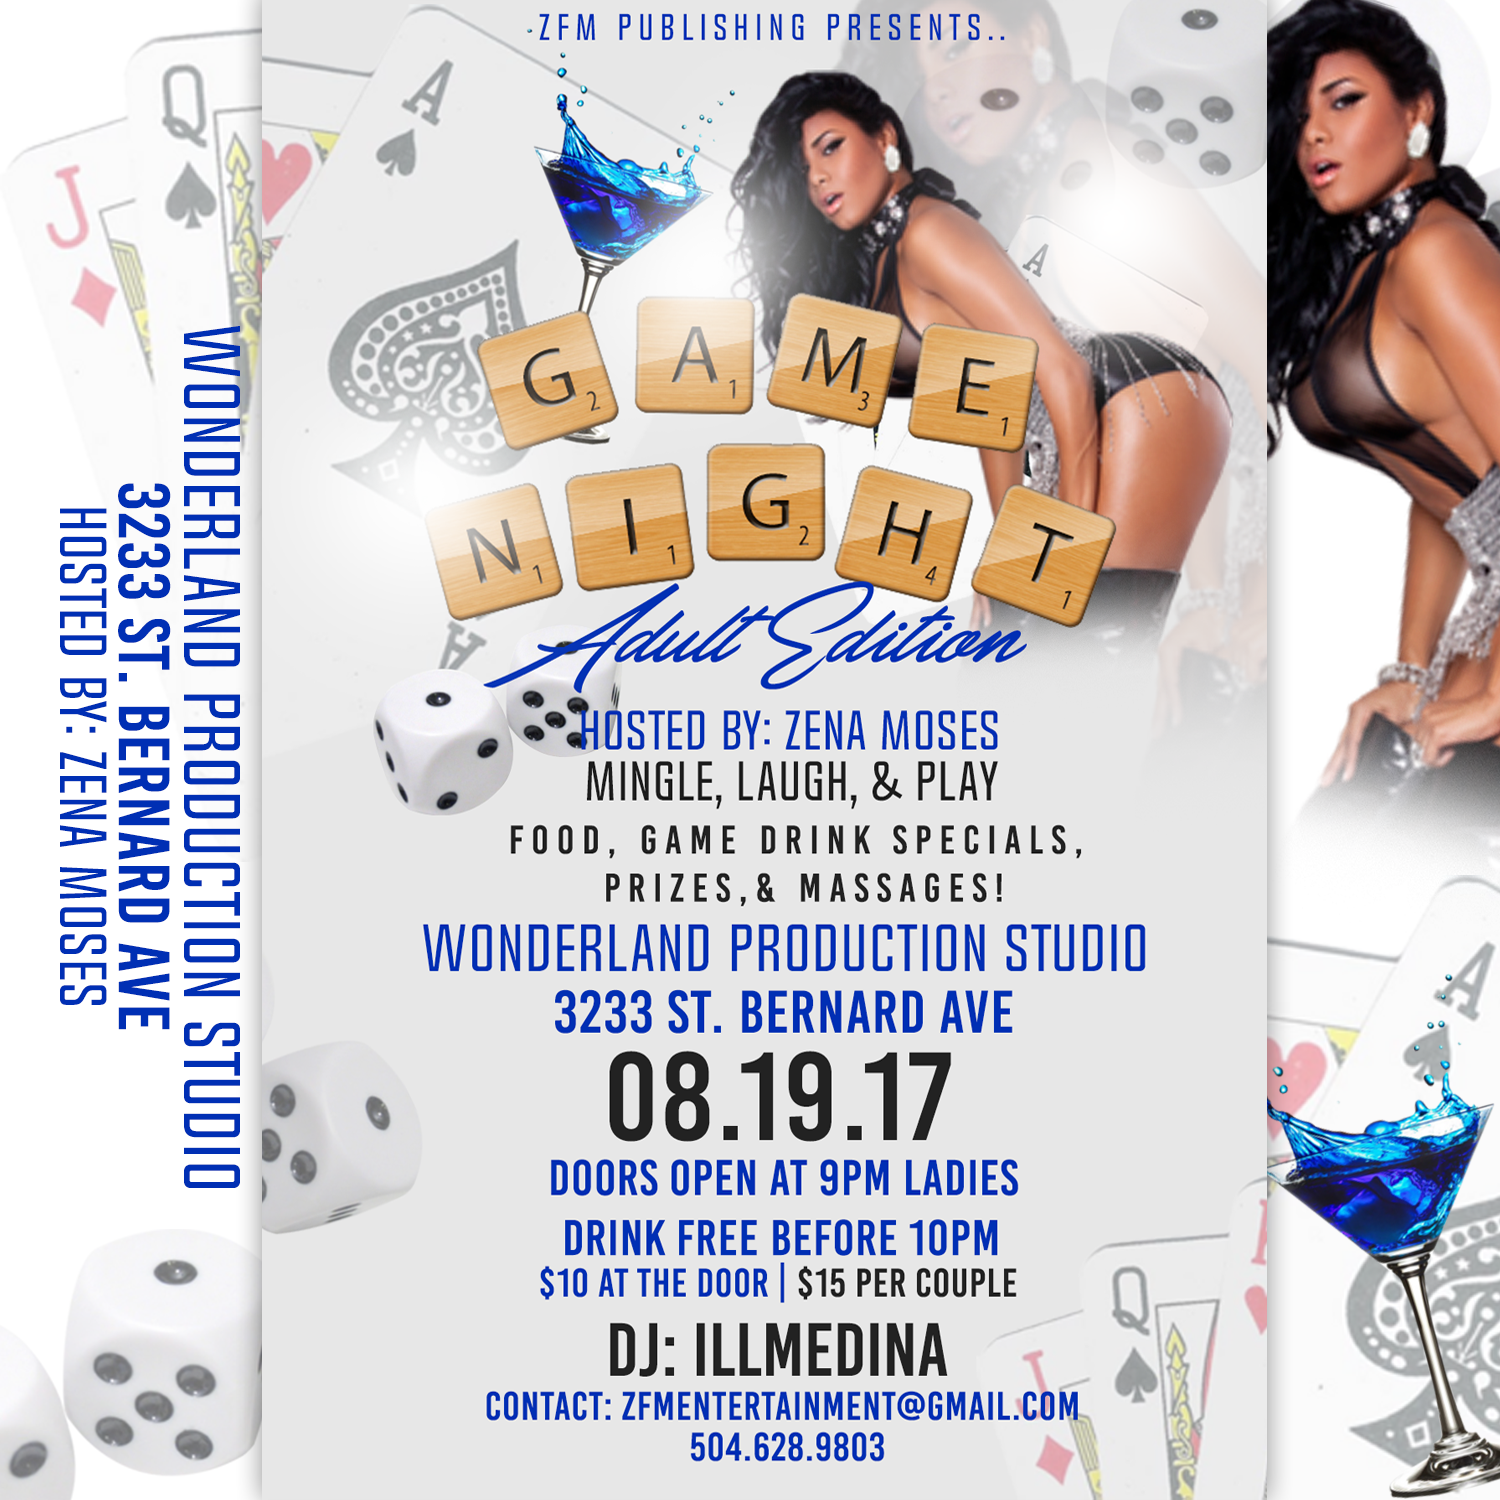 NOLA Adult Edition Game Night hosted by Zena